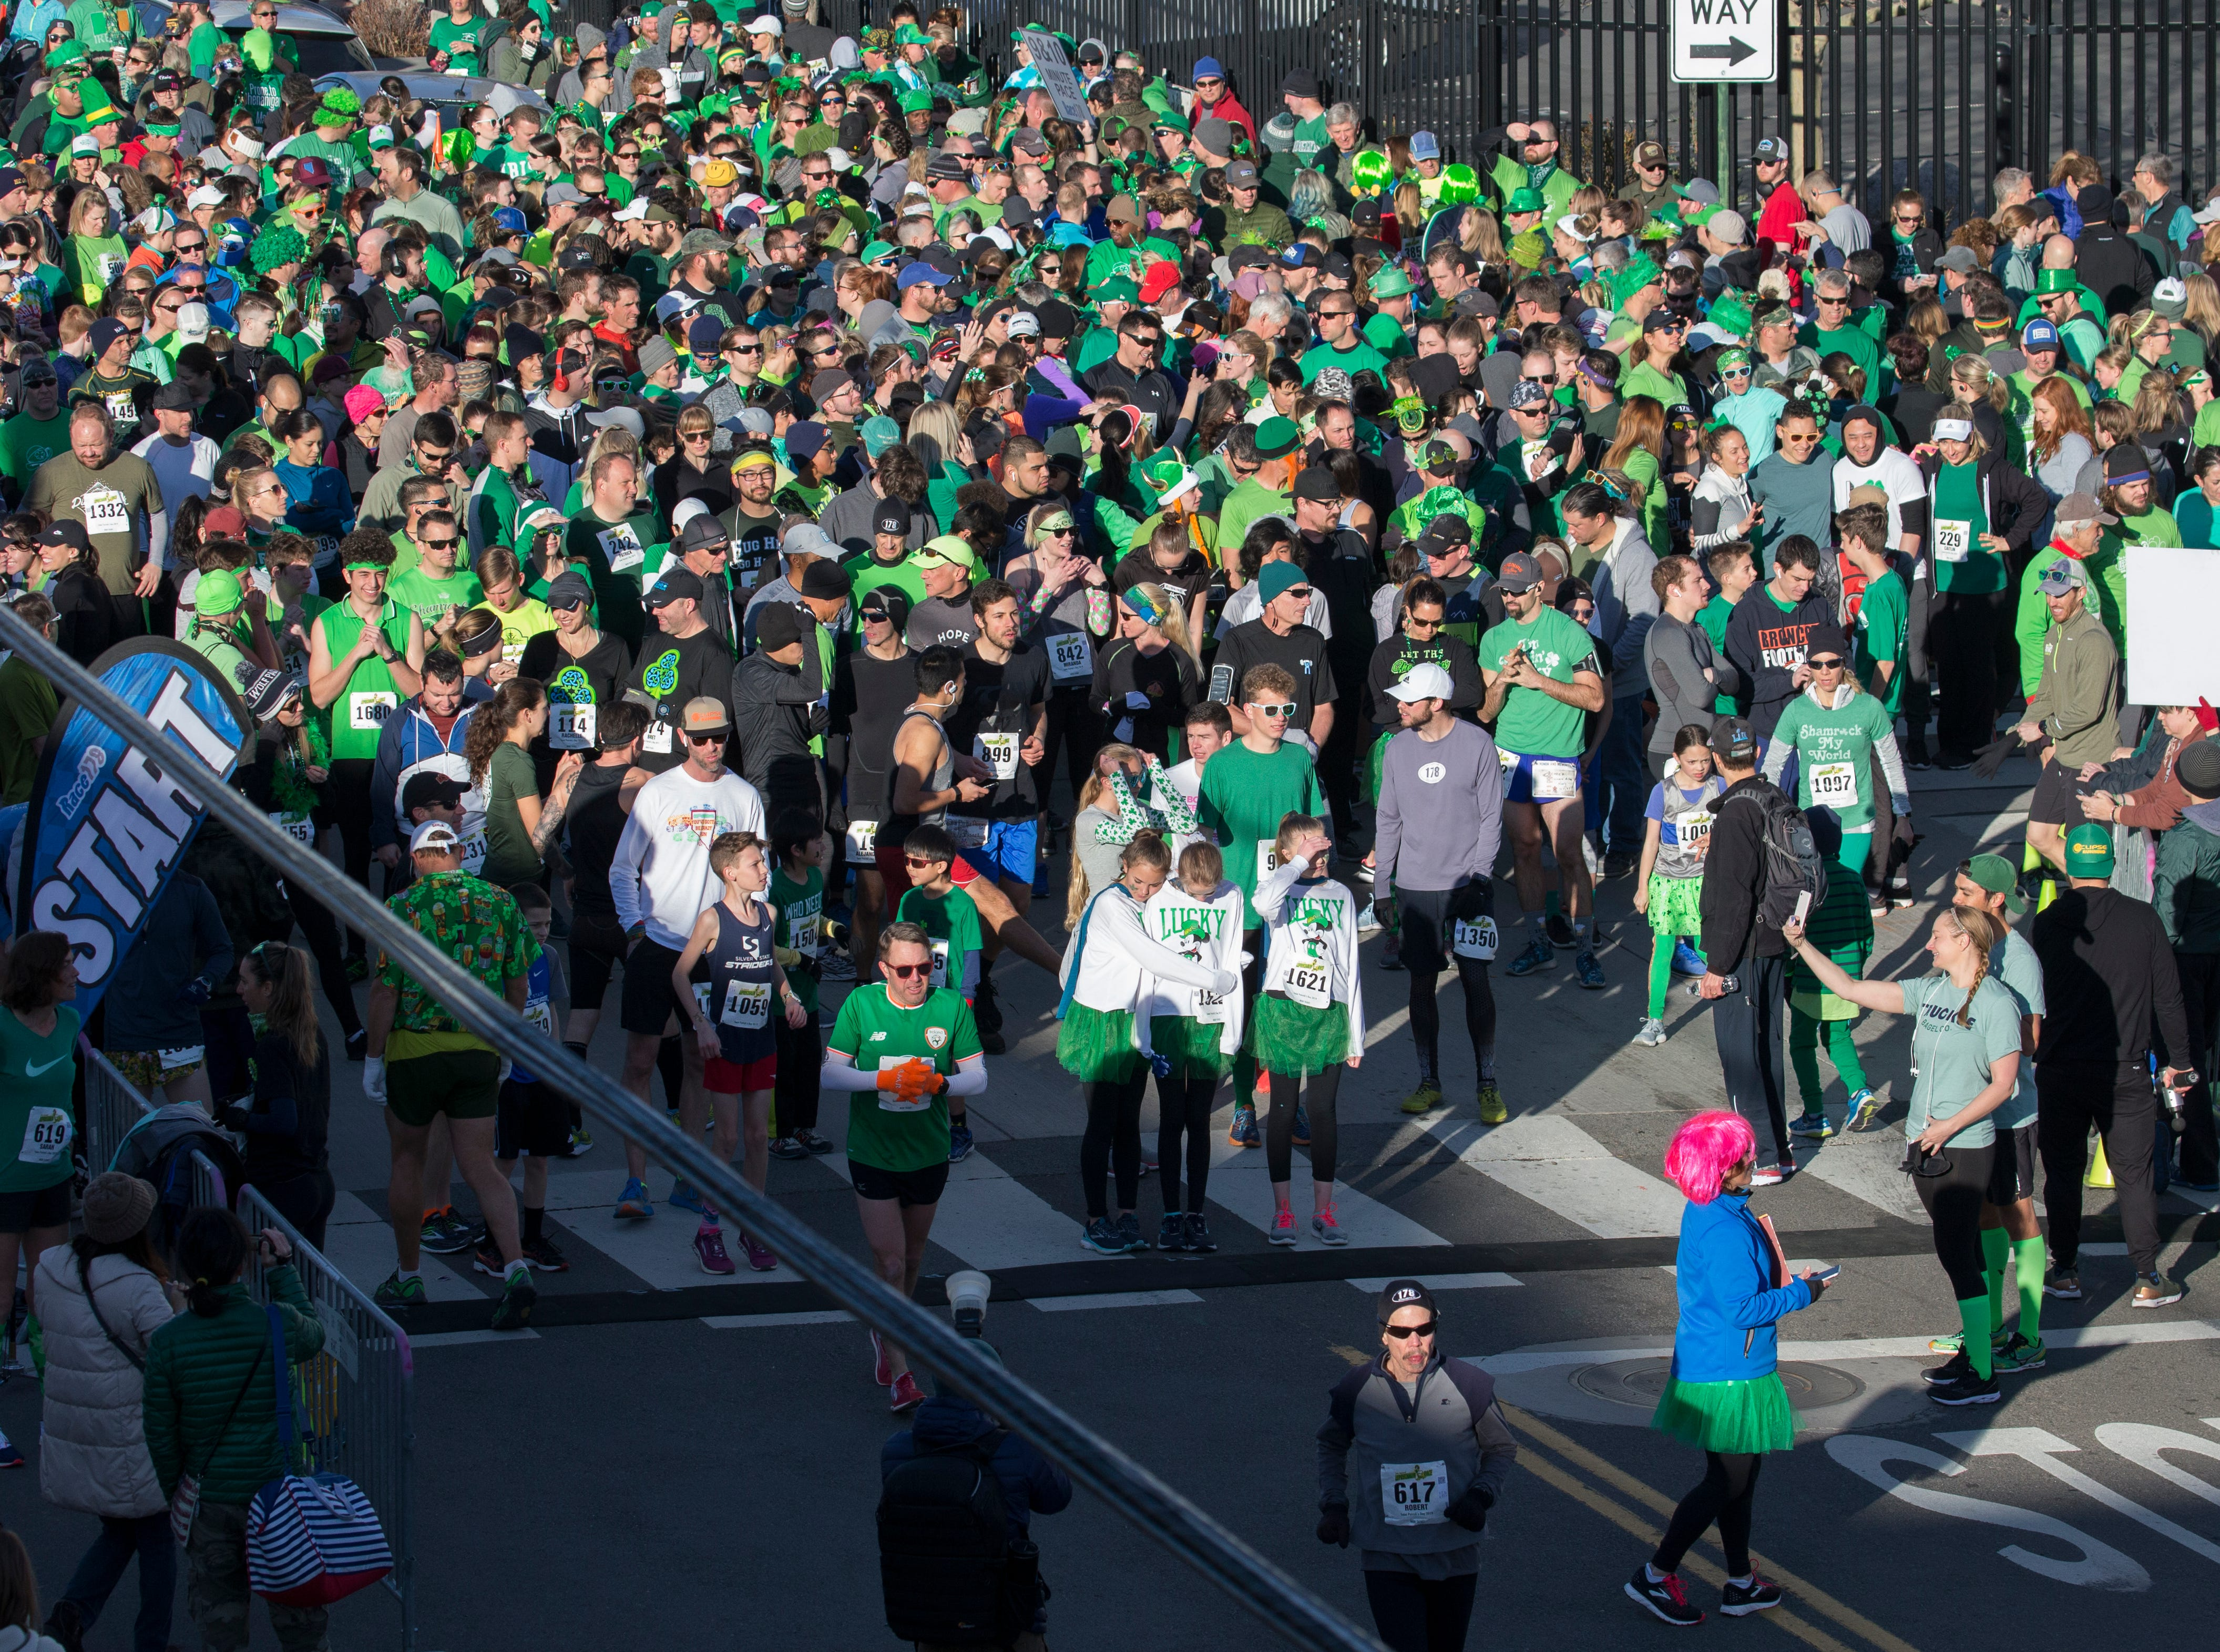 A record number of racers get ready to start the 7th annual Leprechaun Race in downtown Reno, Nevada on Sunday, March 17, 2019.